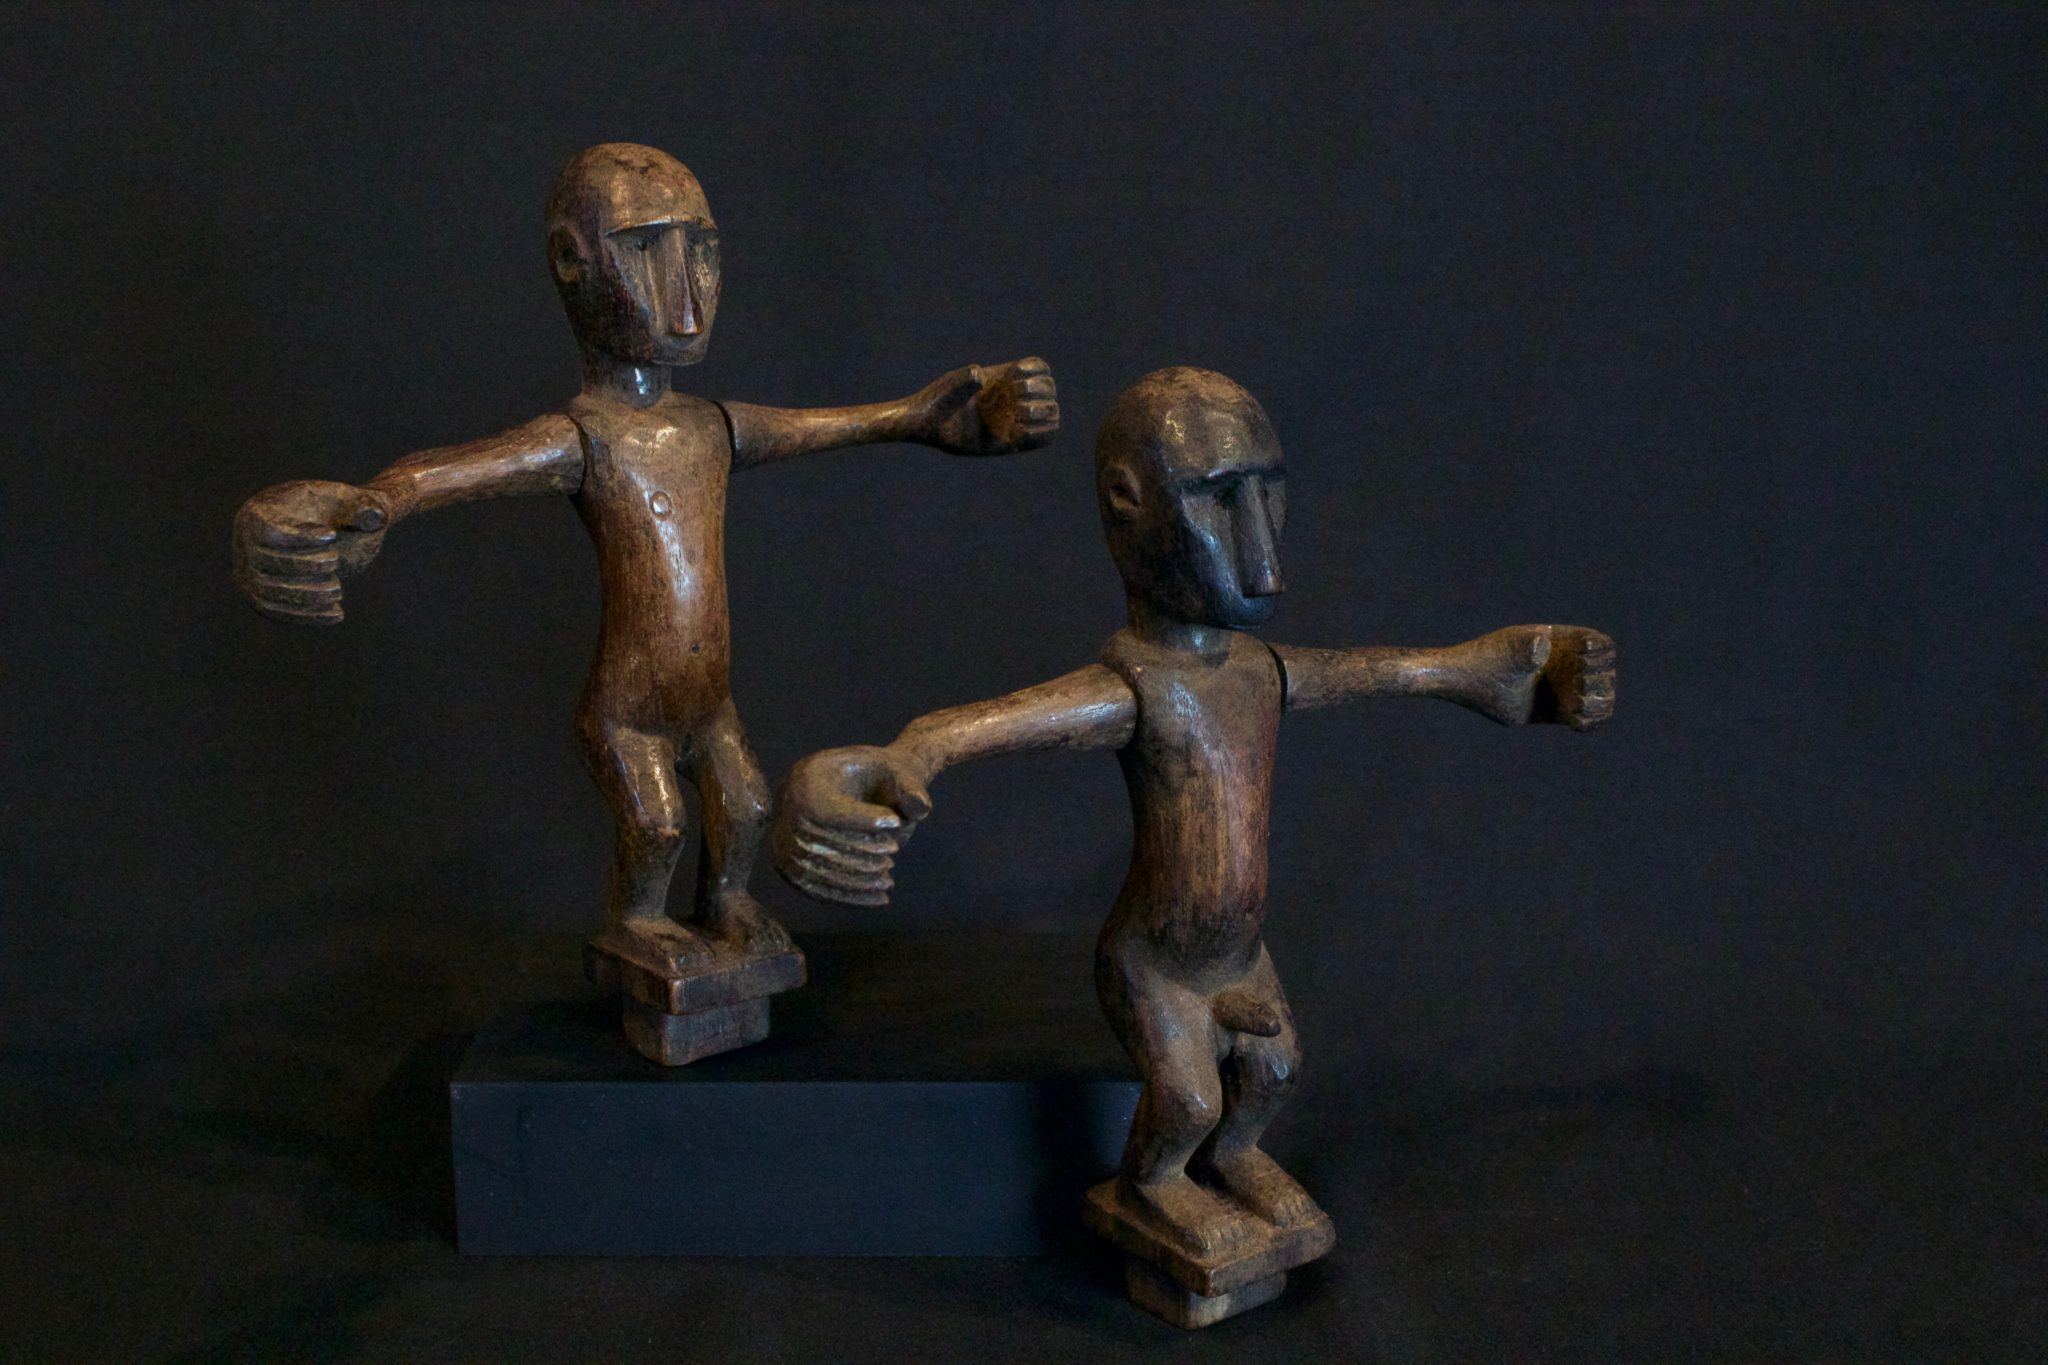 "Shaman Healing Figures, Male and Female Couple, Flores Island, Lesser Sunda Islands, Mid 20th c. Wood, patinated with use and age. One of the pair held in each hand during a ceremonial dance for healing a marriage. (female - 8"" x 7 ¾"" x 1""); (male - 8"" x 8"" x 1 ½""), $590 (sold as pair)"